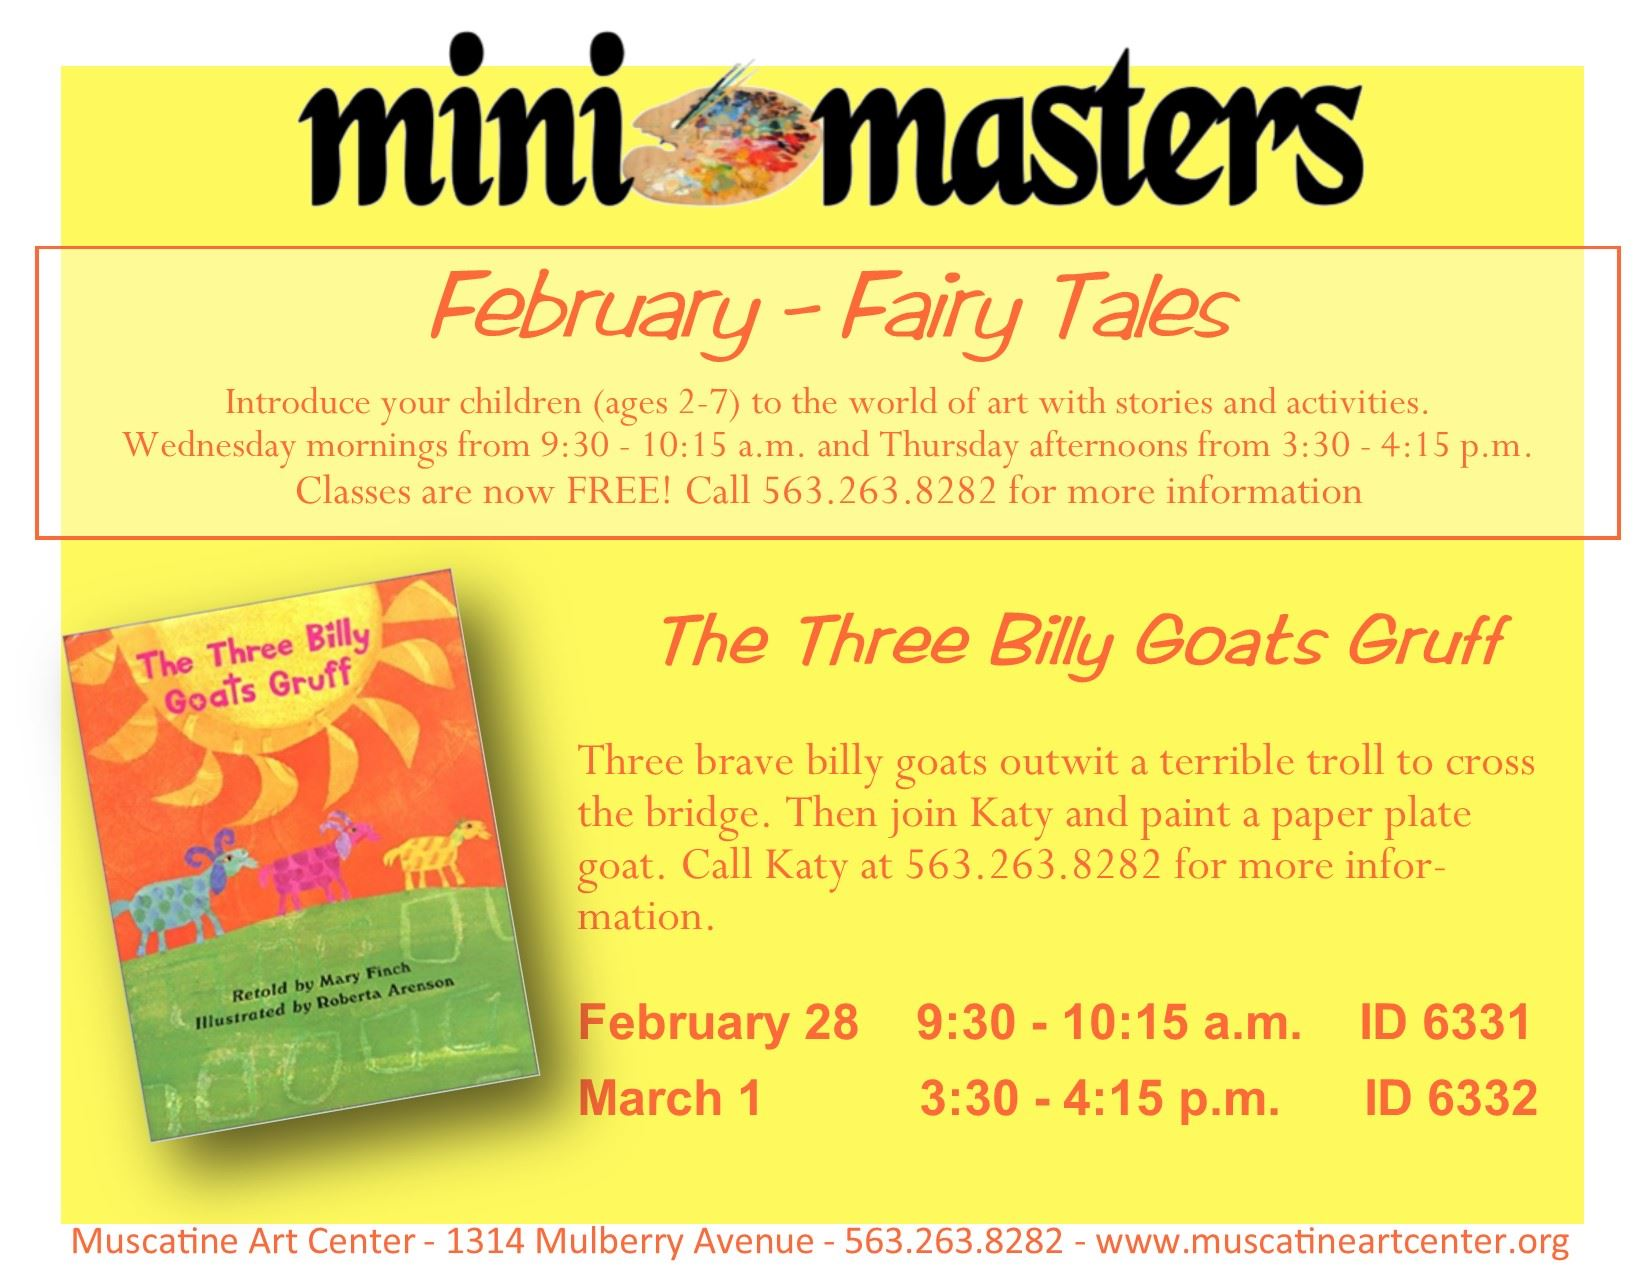 February 28- March 1 - Mini Masters -The Three Billy Goats Gruff